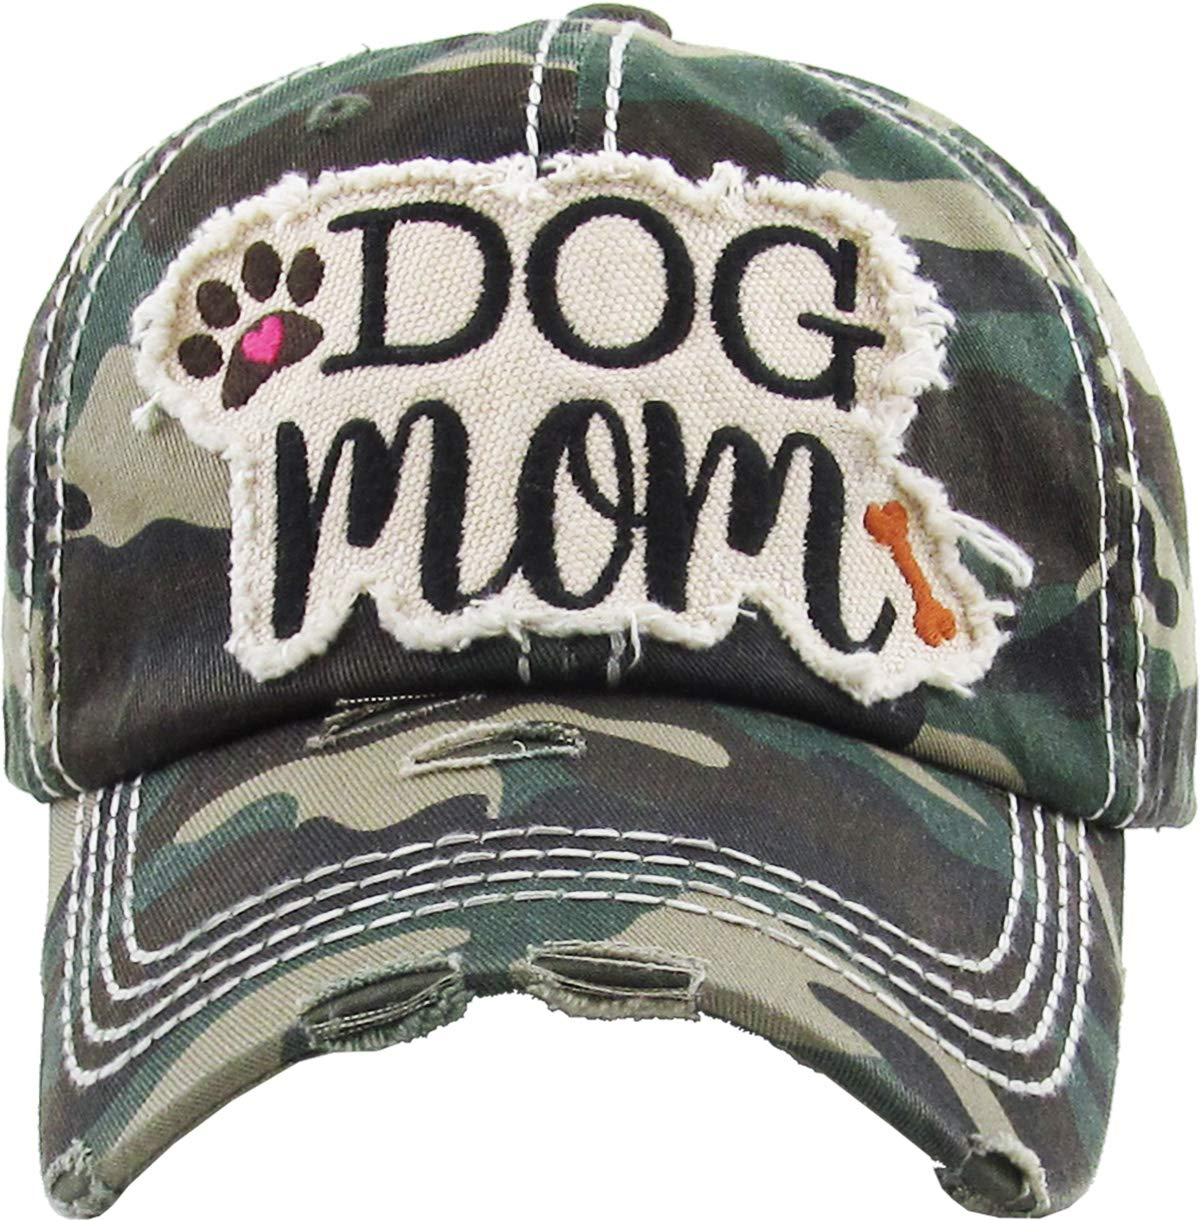 The Original Southern Western Womens Hats Collection Vintage Distressed Dad HAt (Adjustable, Dog Mom - Camo)